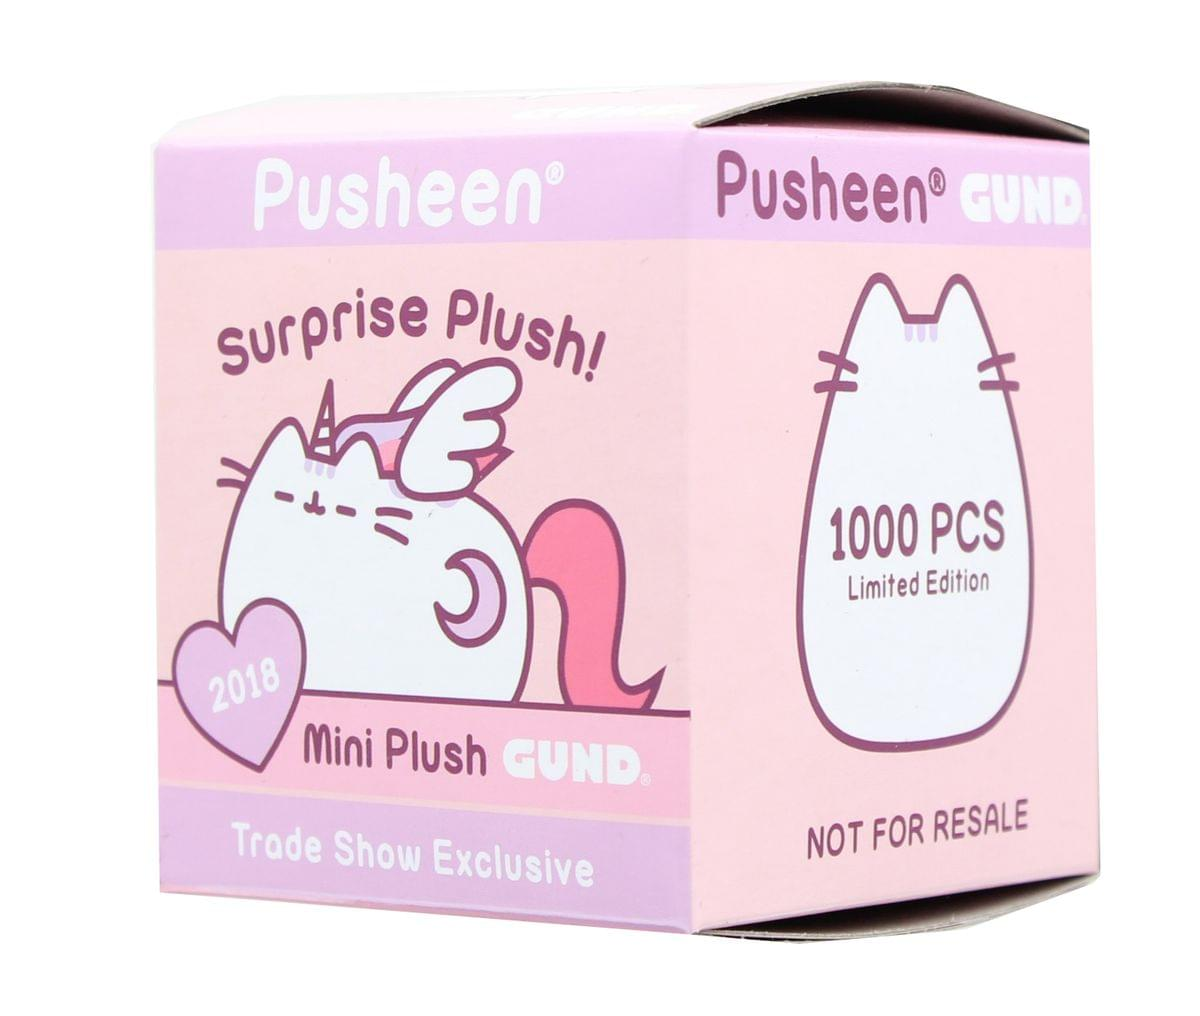 Pusheen Surprise Mini Plush Blind Box 2018 Trade Show Exclusive